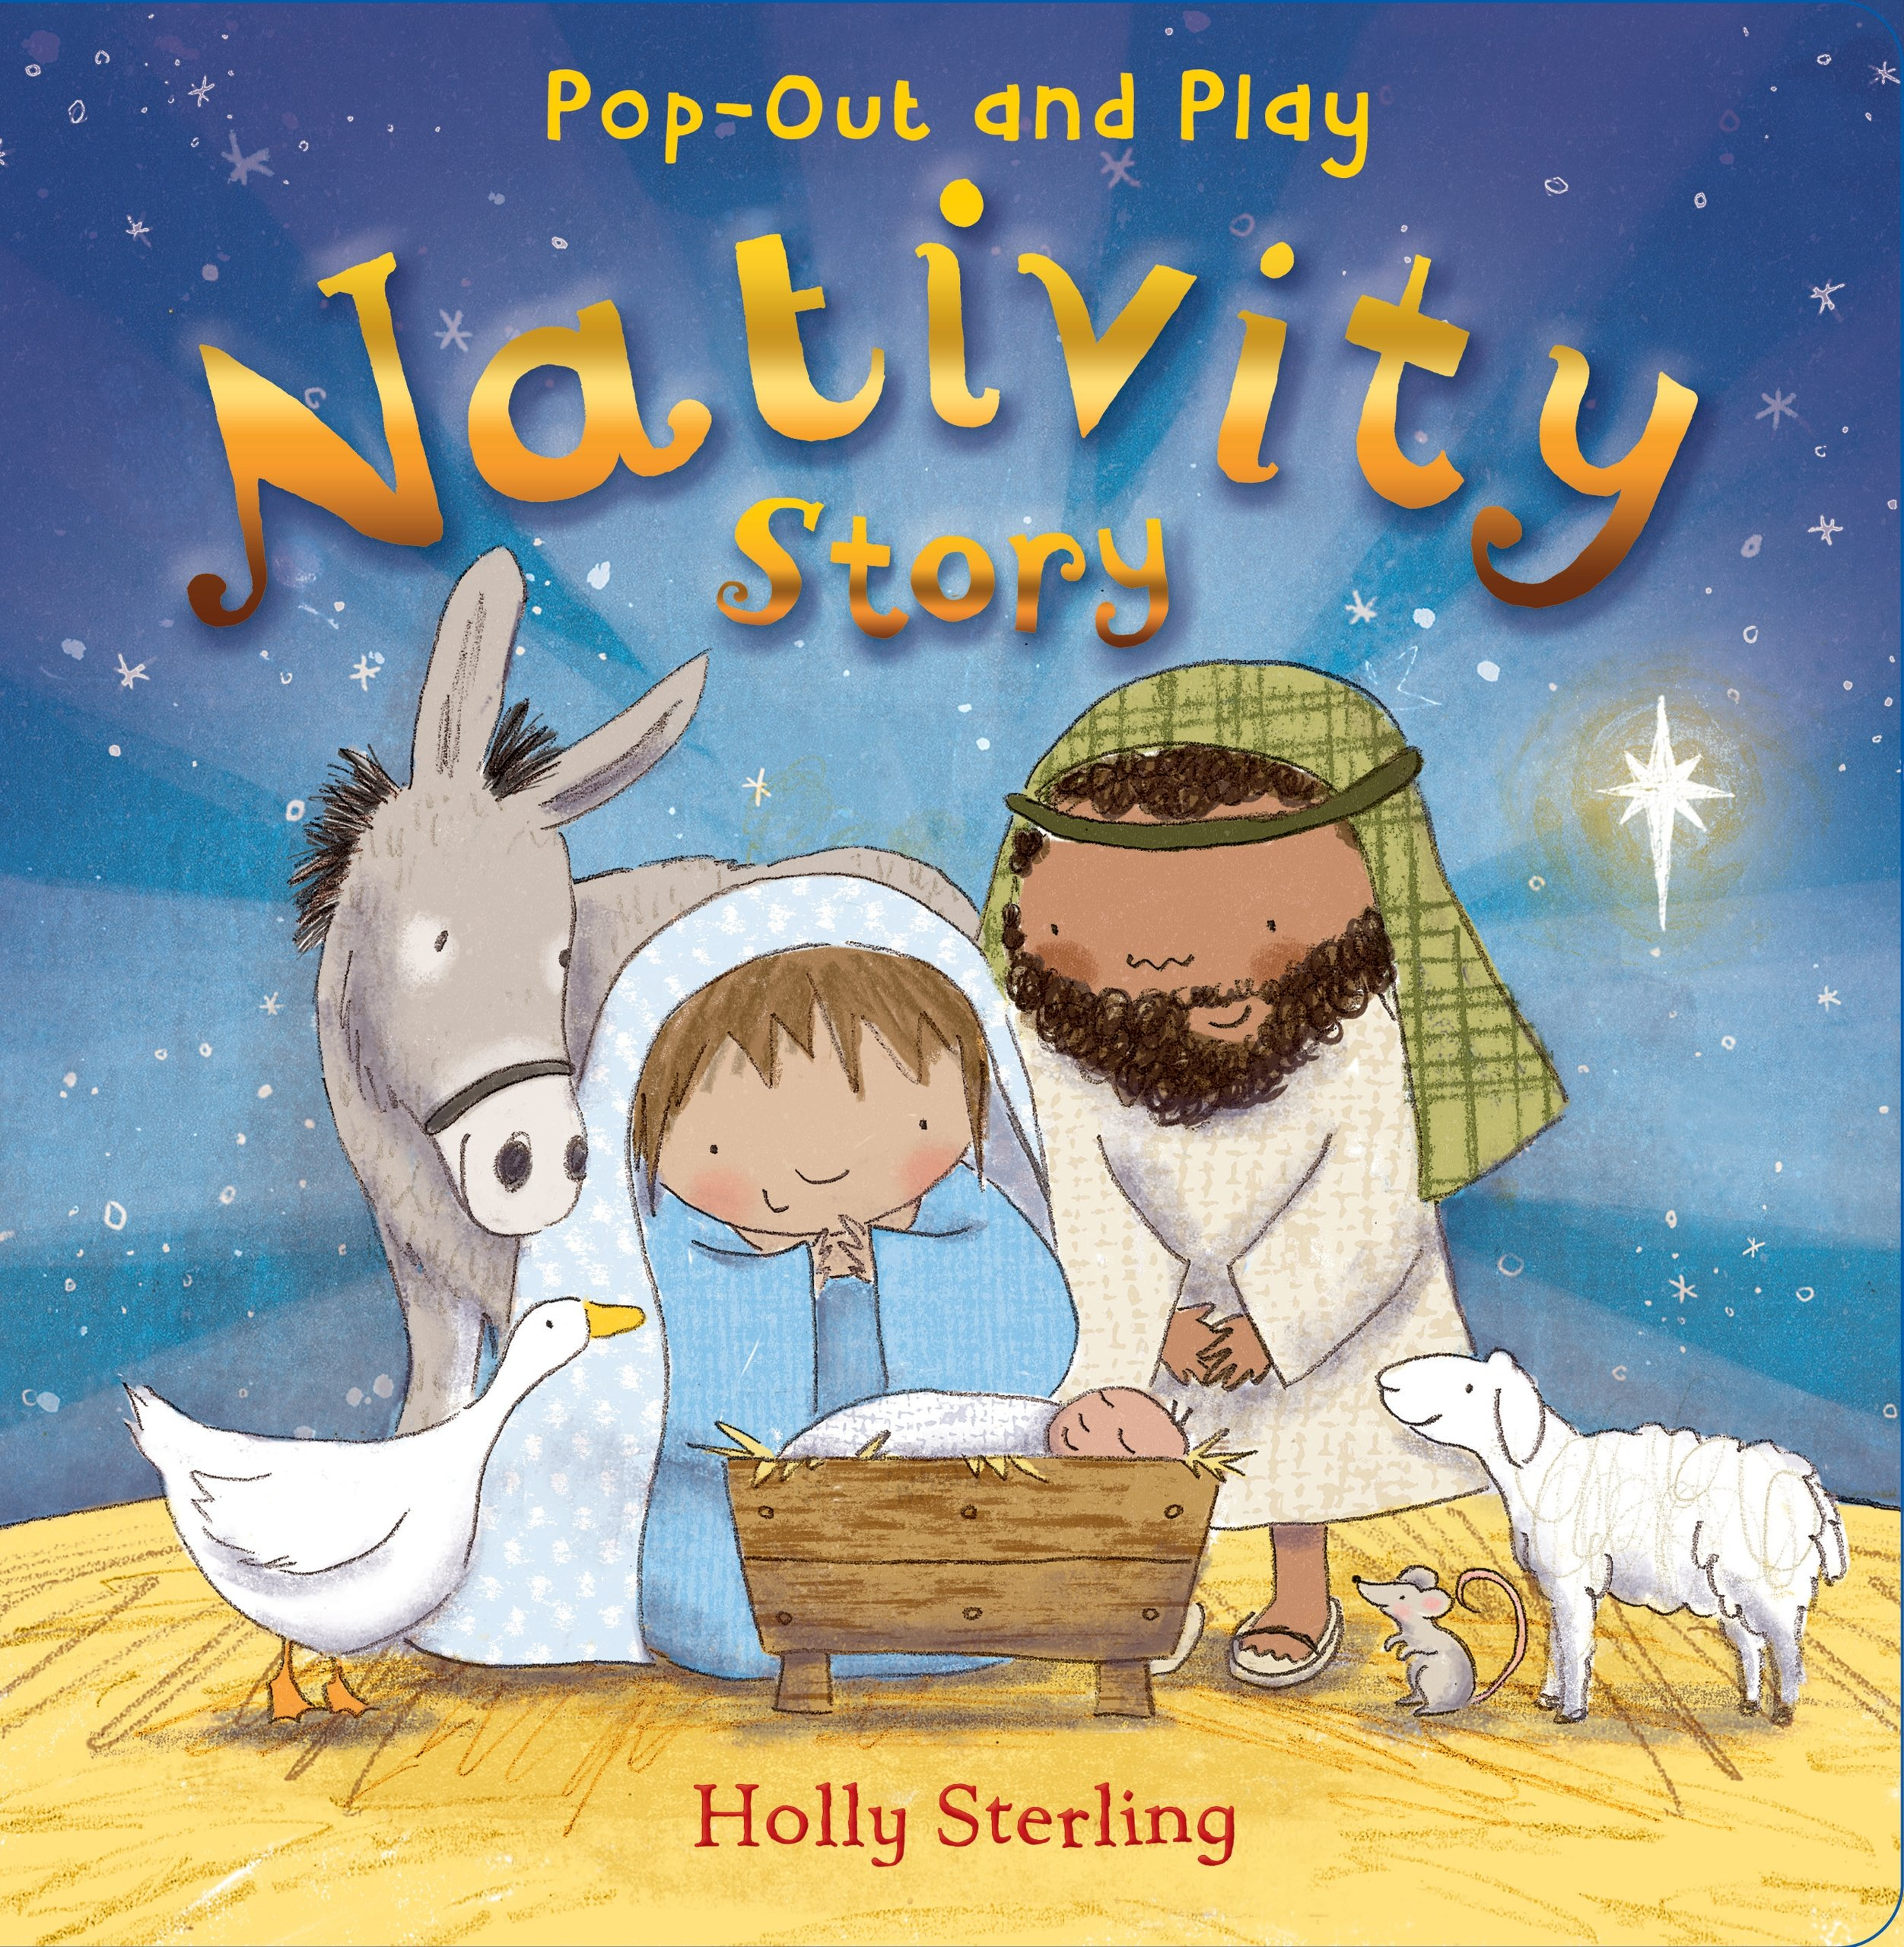 Read Online Pop-Out and Play Nativity Story PDF